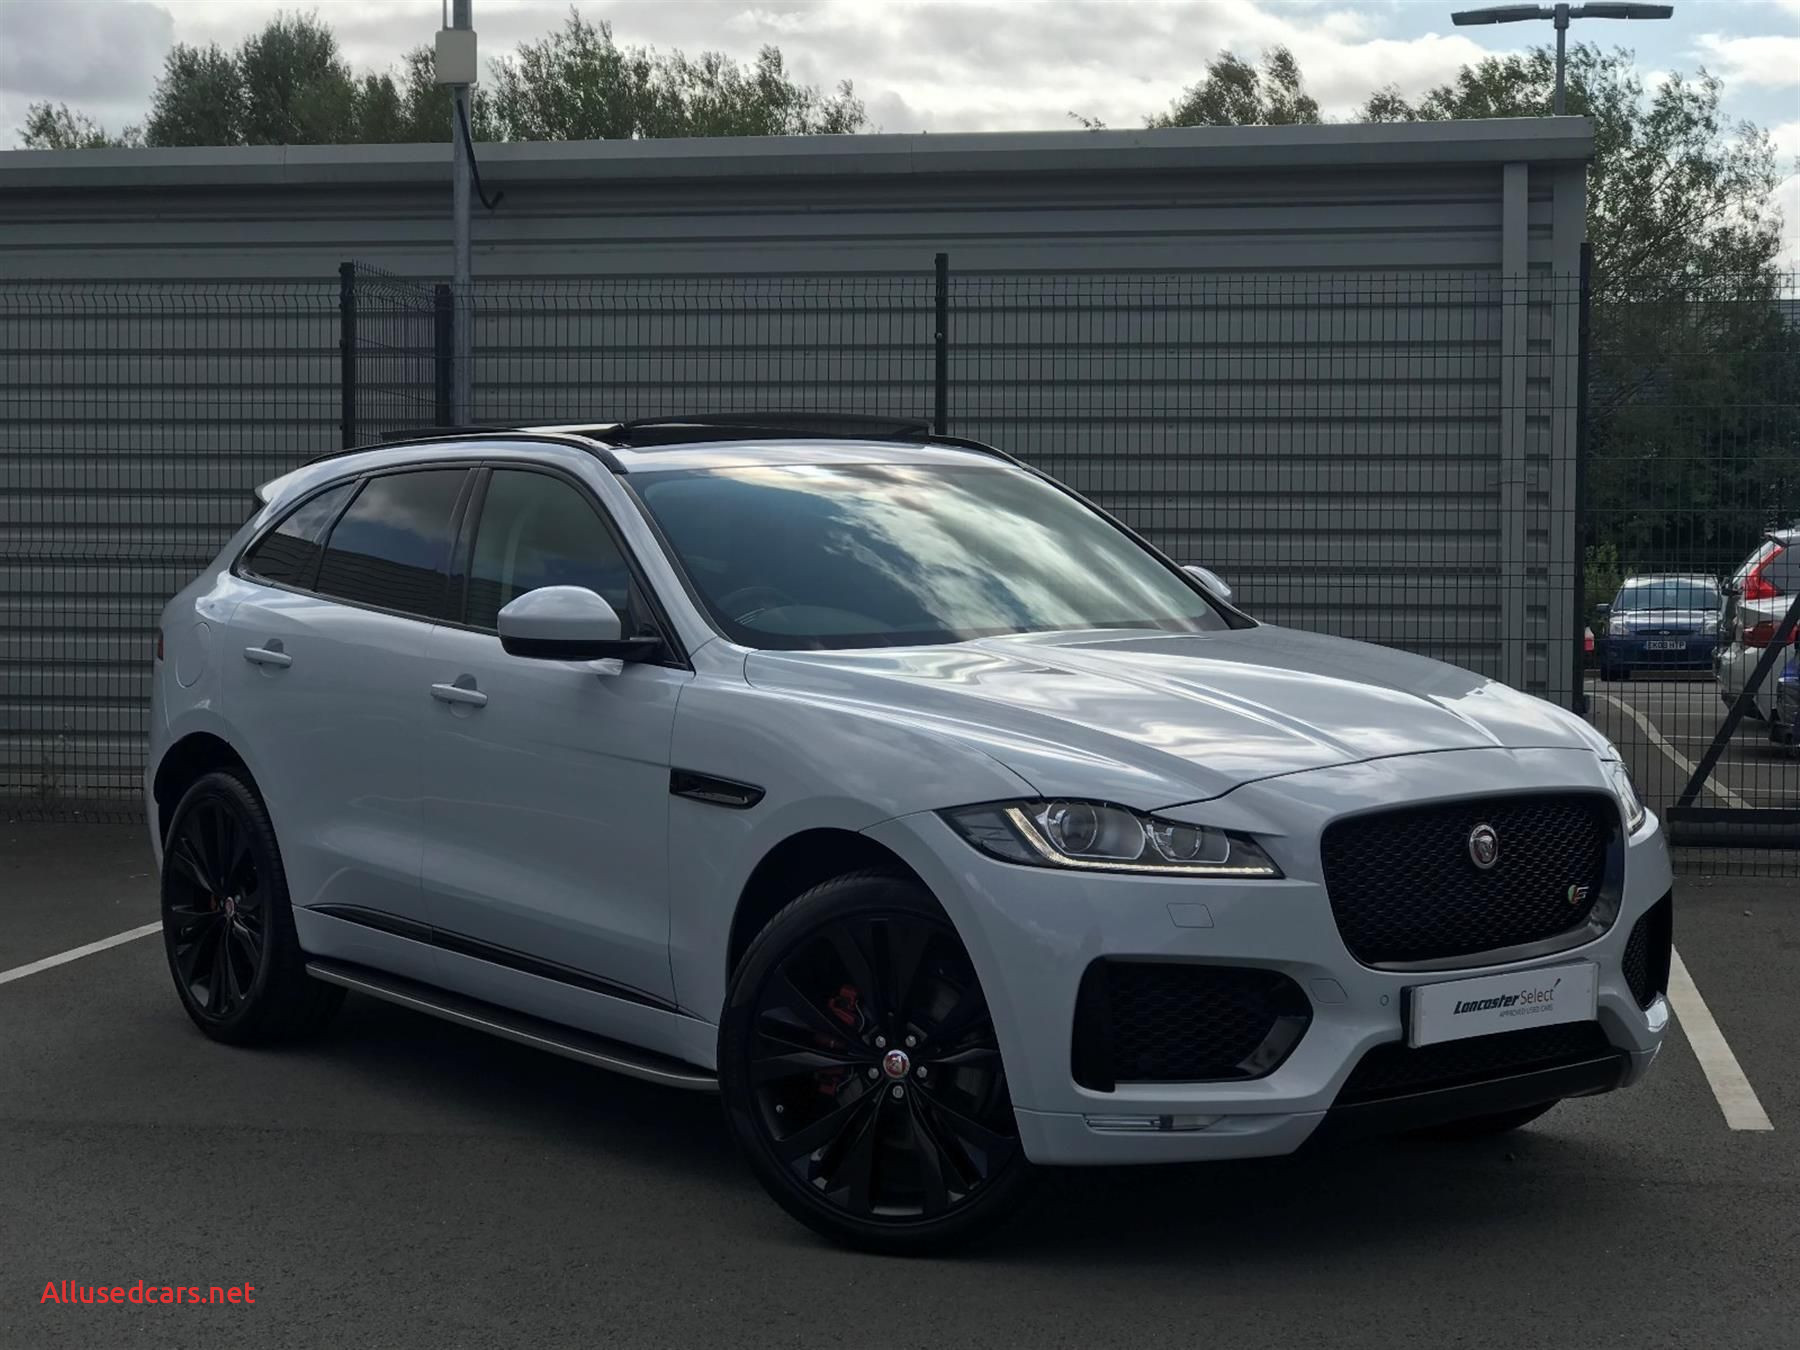 Used Nissan Fresh Used 2019 Jaguar F Pace 3 0d V6 S 5dr Auto Awd for Sale In